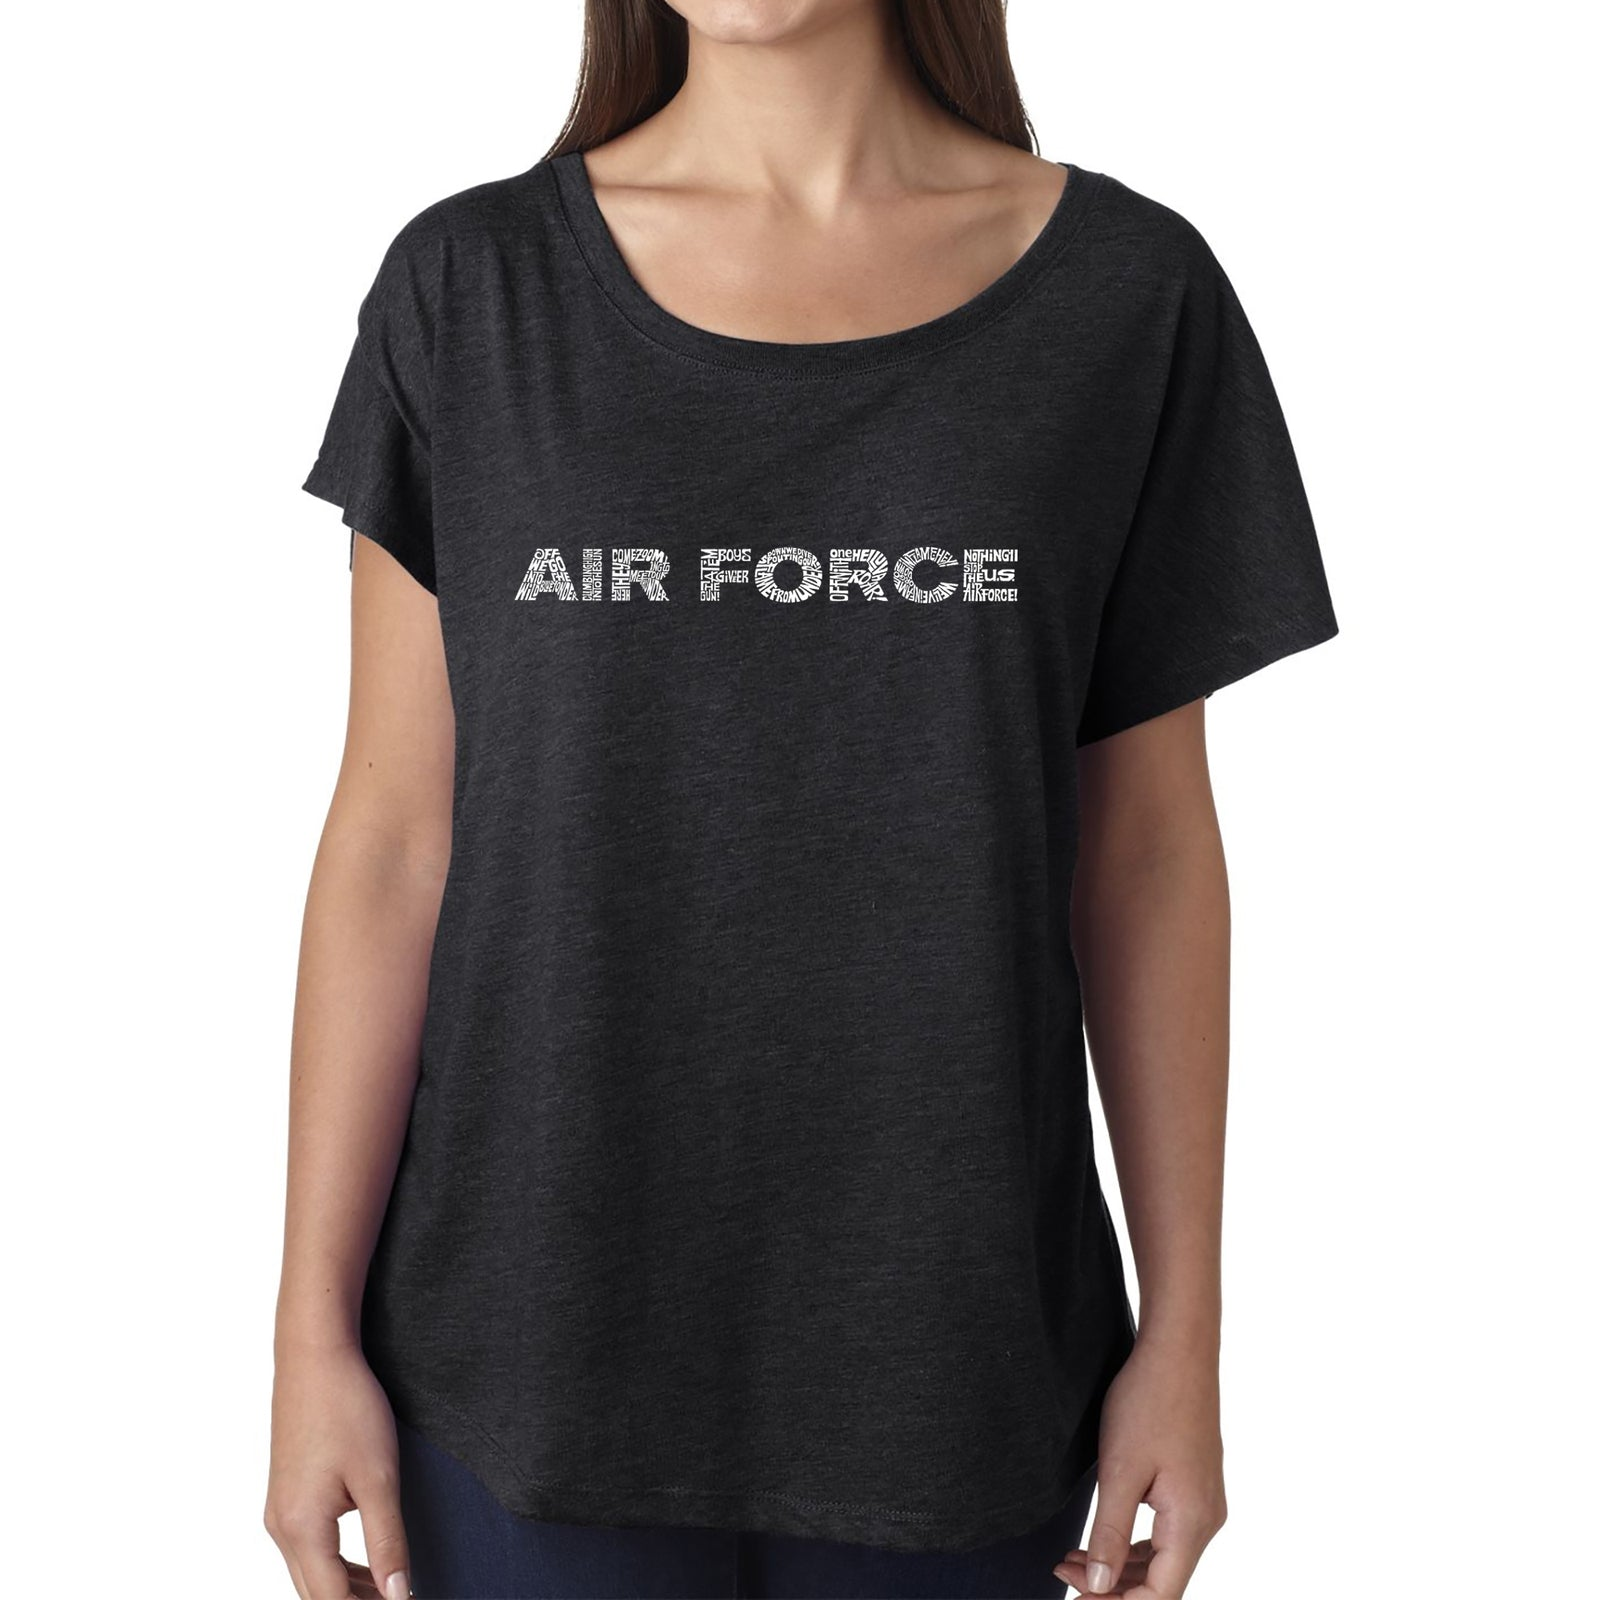 Women's Loose Fit Dolman Cut Word Art Shirt - Lyrics To The Air Force Song